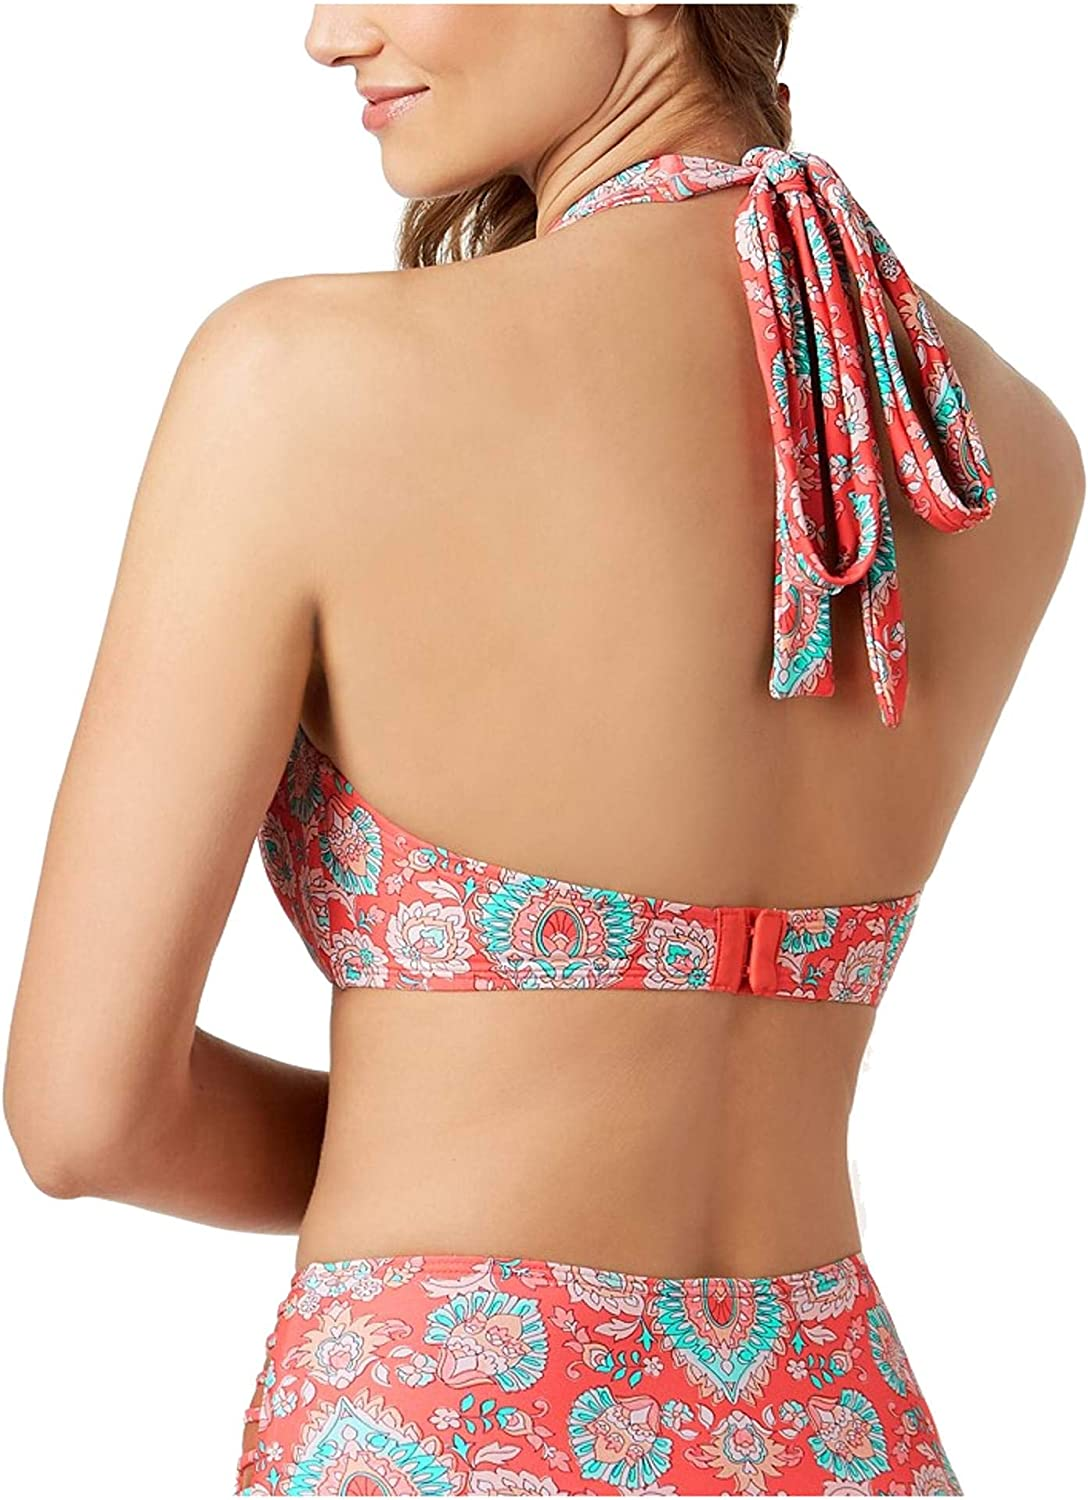 Coco Reef Women's Bikini Top Swimsuit with Convertible Neckline & Strappy Detail